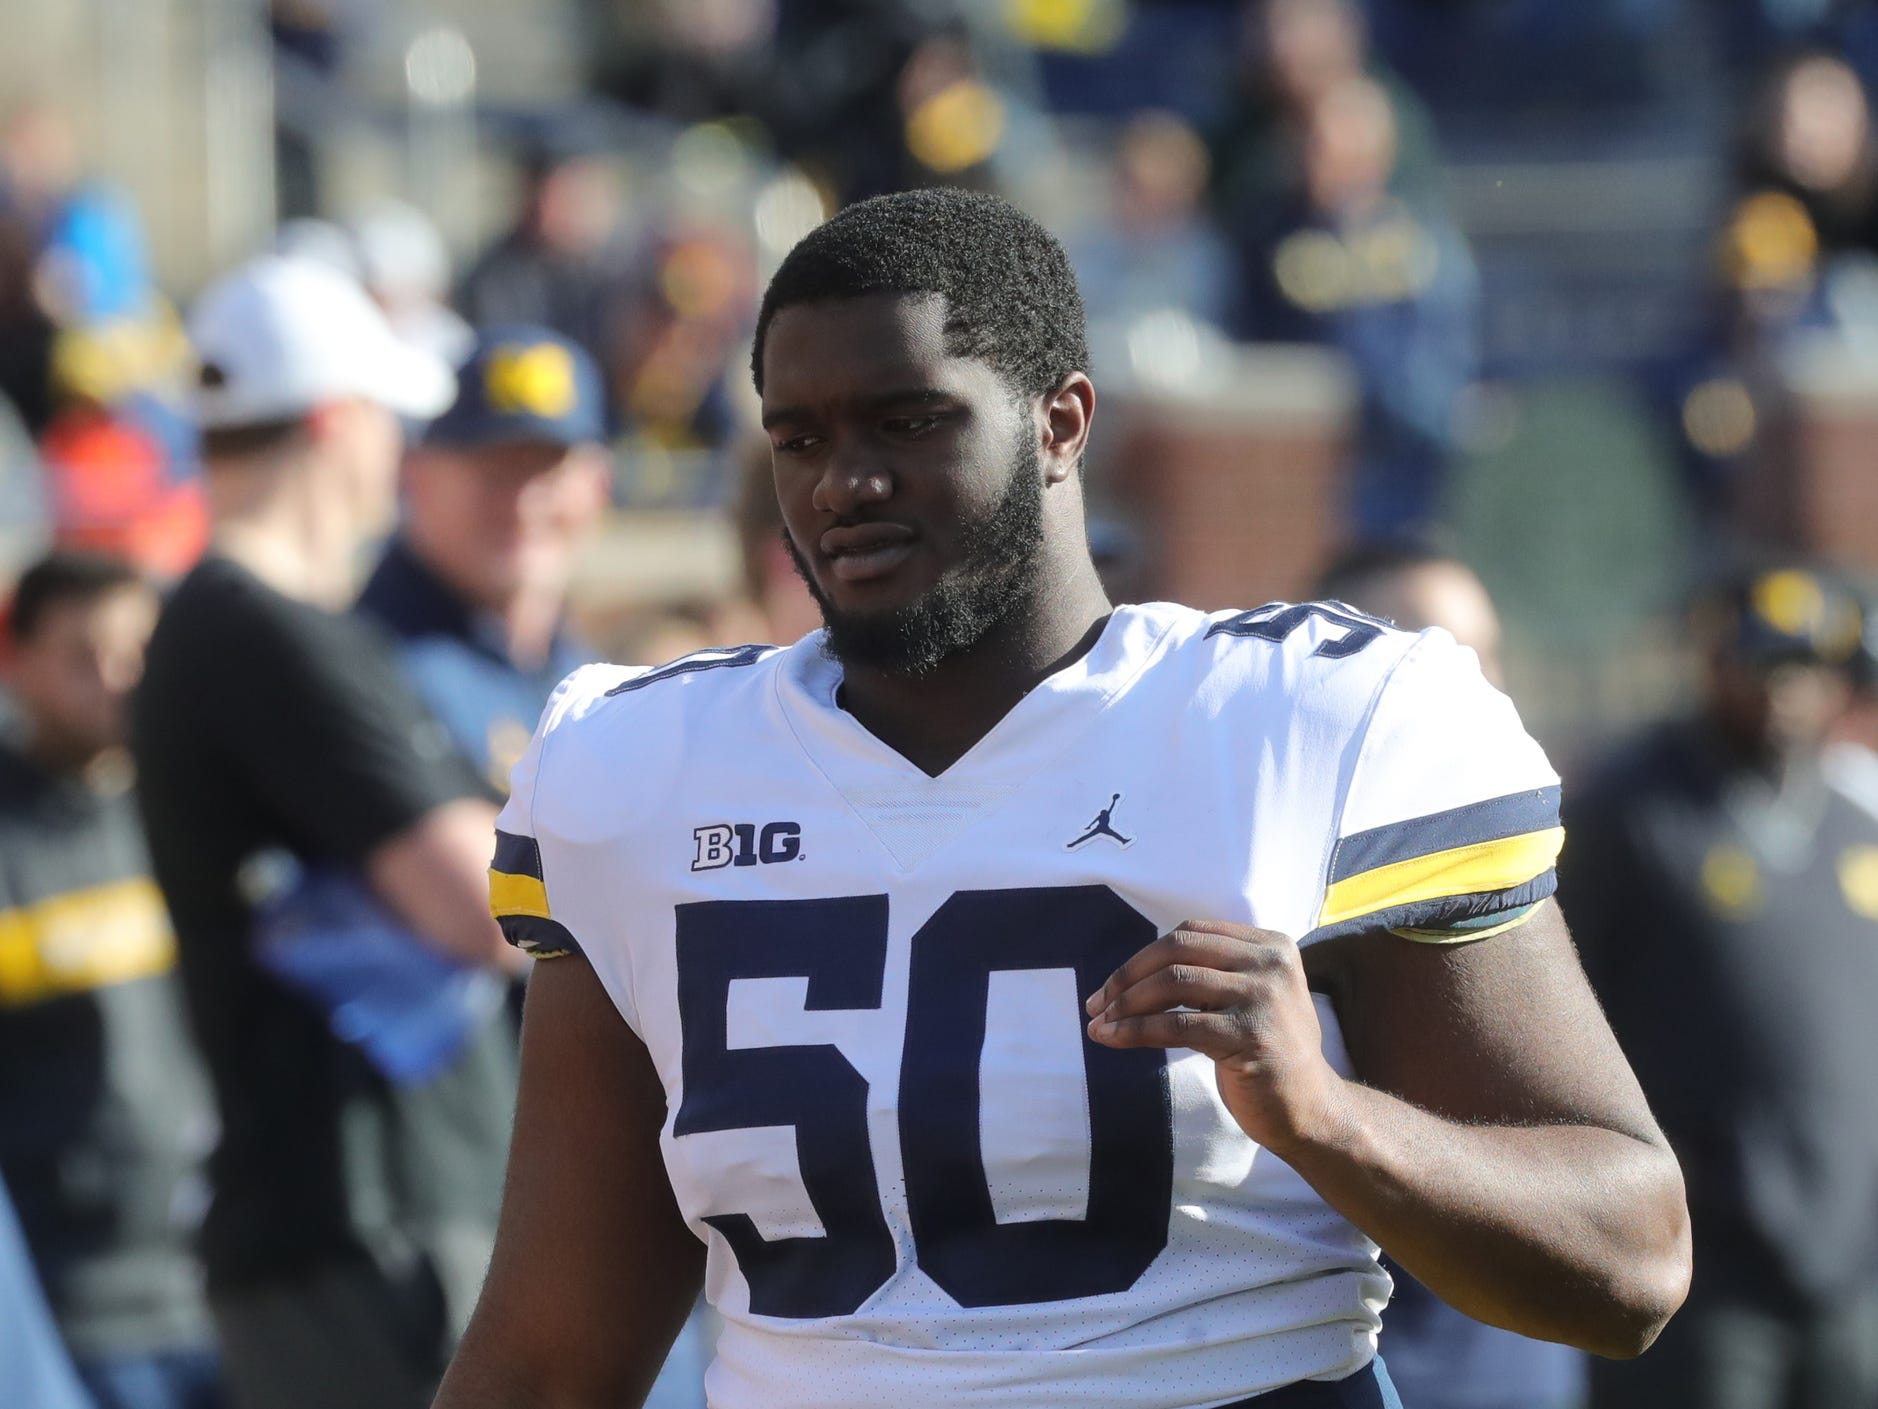 Michigan defensive lineman Michael Dwumfour on the sideline during the spring game Saturday, April 13, 2019 at Michigan Stadium in Ann Arbor.